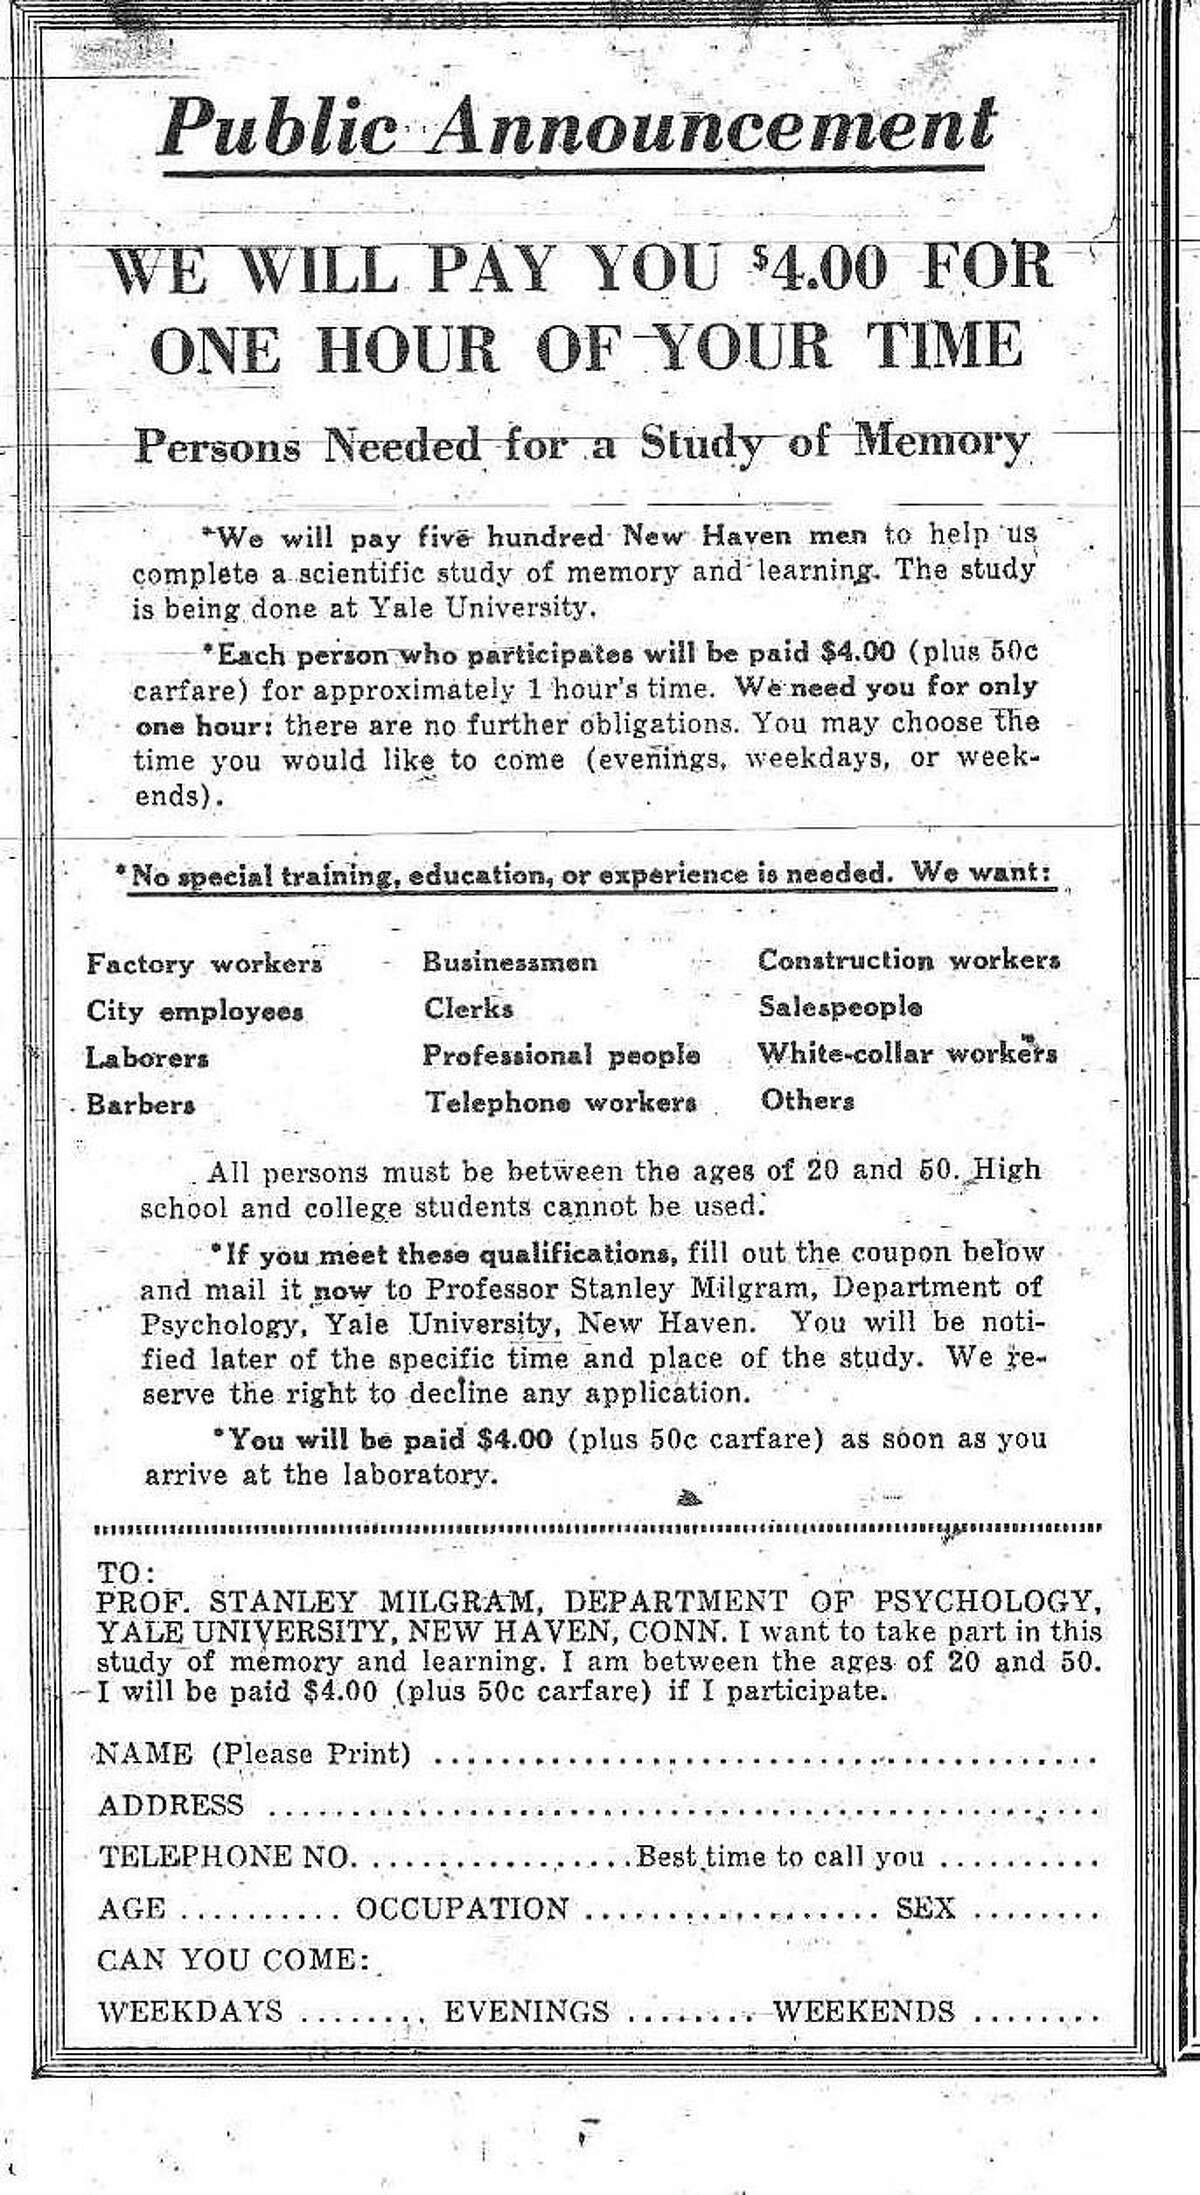 This advertisement ran in the New Haven Register on June 18, 1961.